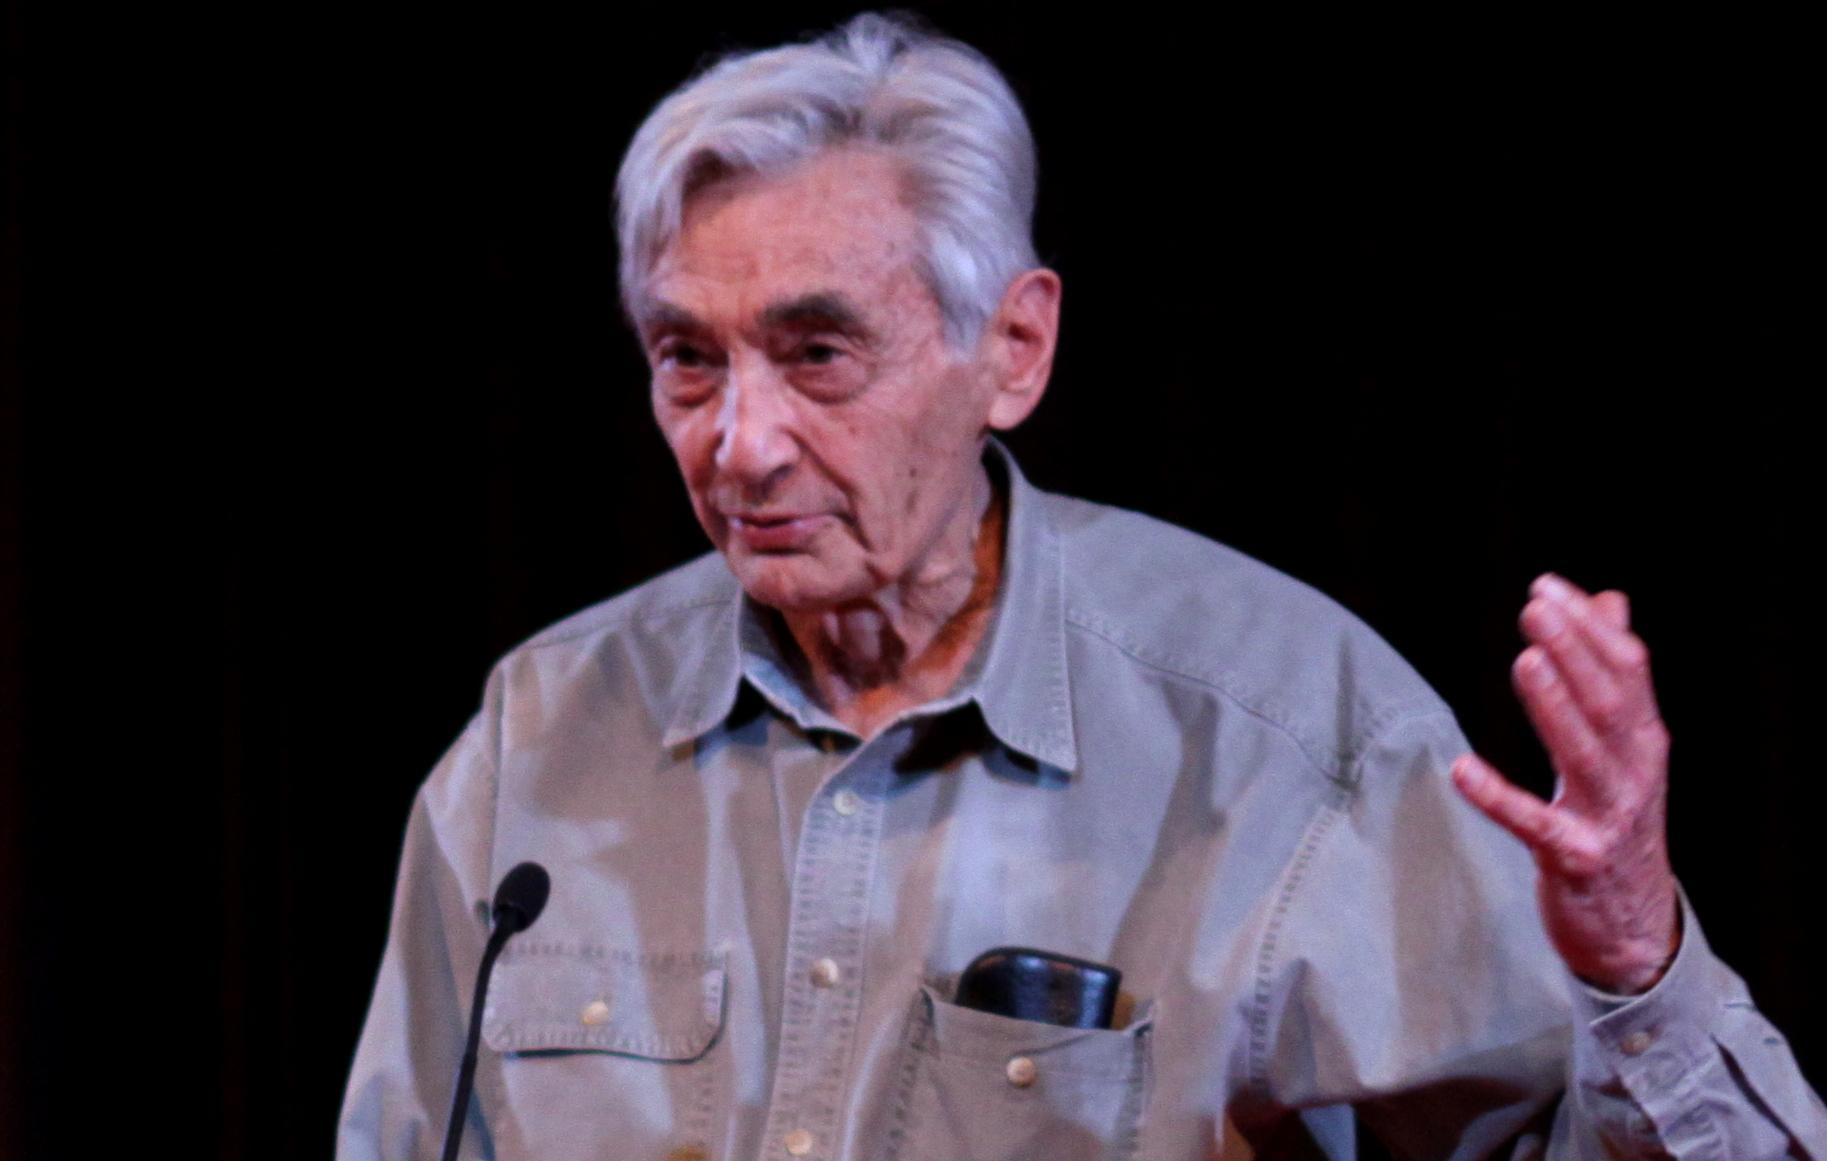 By Howard_Zinn_at_lectern.jpg: Jim from Stevens Point, WI, USA derivative work: Gobonobo (Howard_Zinn_at_lectern.jpg) [CC BY-SA 2.0 (http://creativecommons.org/licenses/by-sa/2.0)], via Wikimedia Commons